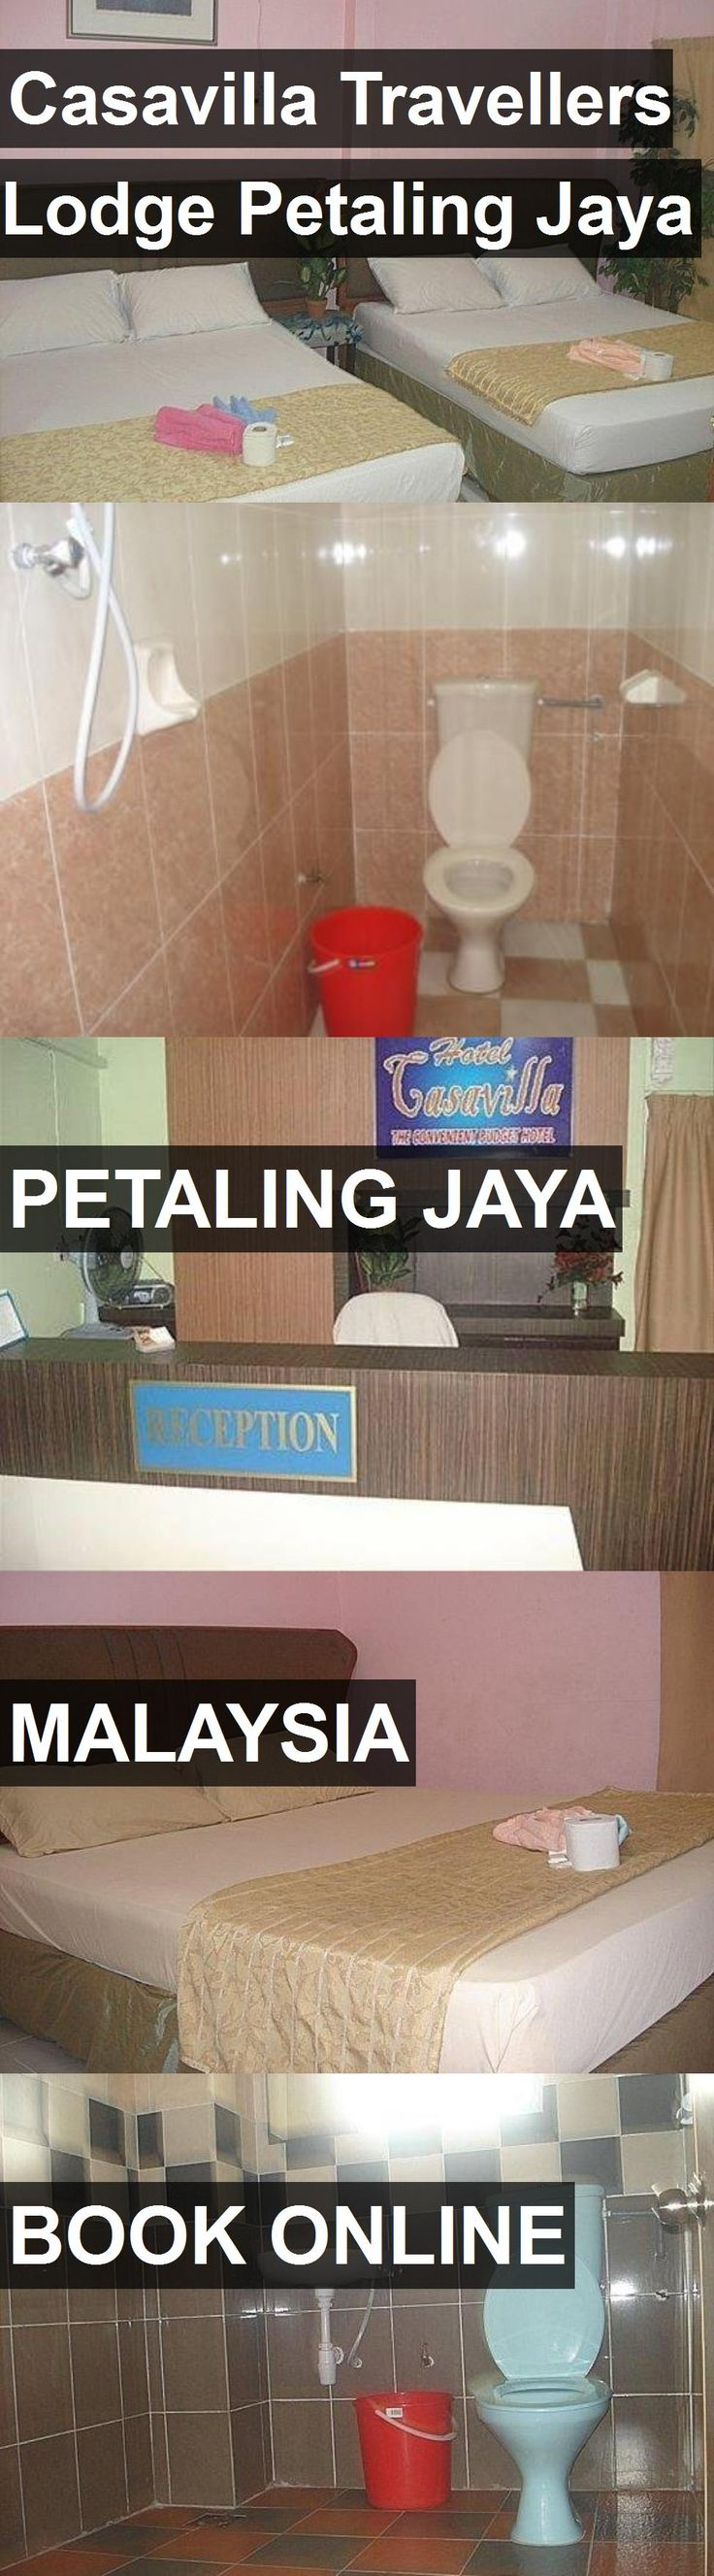 Hotel Casavilla Travellers Lodge Petaling Jaya in Petaling Jaya, Malaysia. For more information, photos, reviews and best prices please follow the link. #Malaysia #PetalingJaya #travel #vacation #hotel